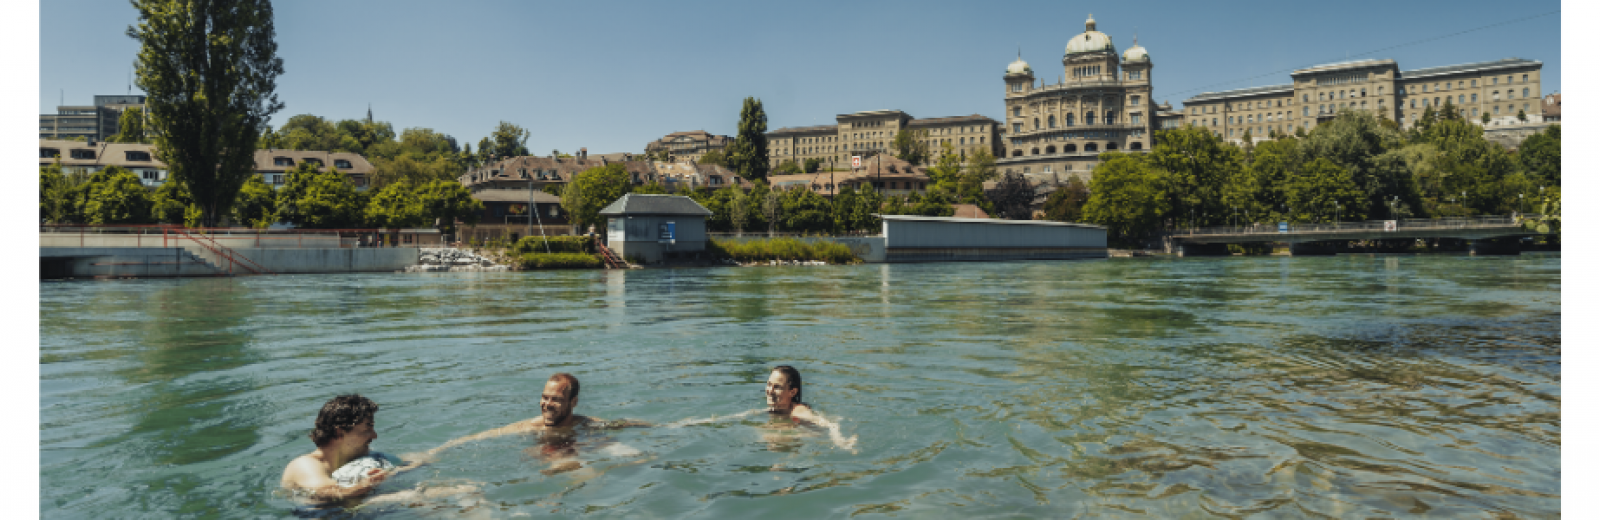 Simming in the Aare, Bern